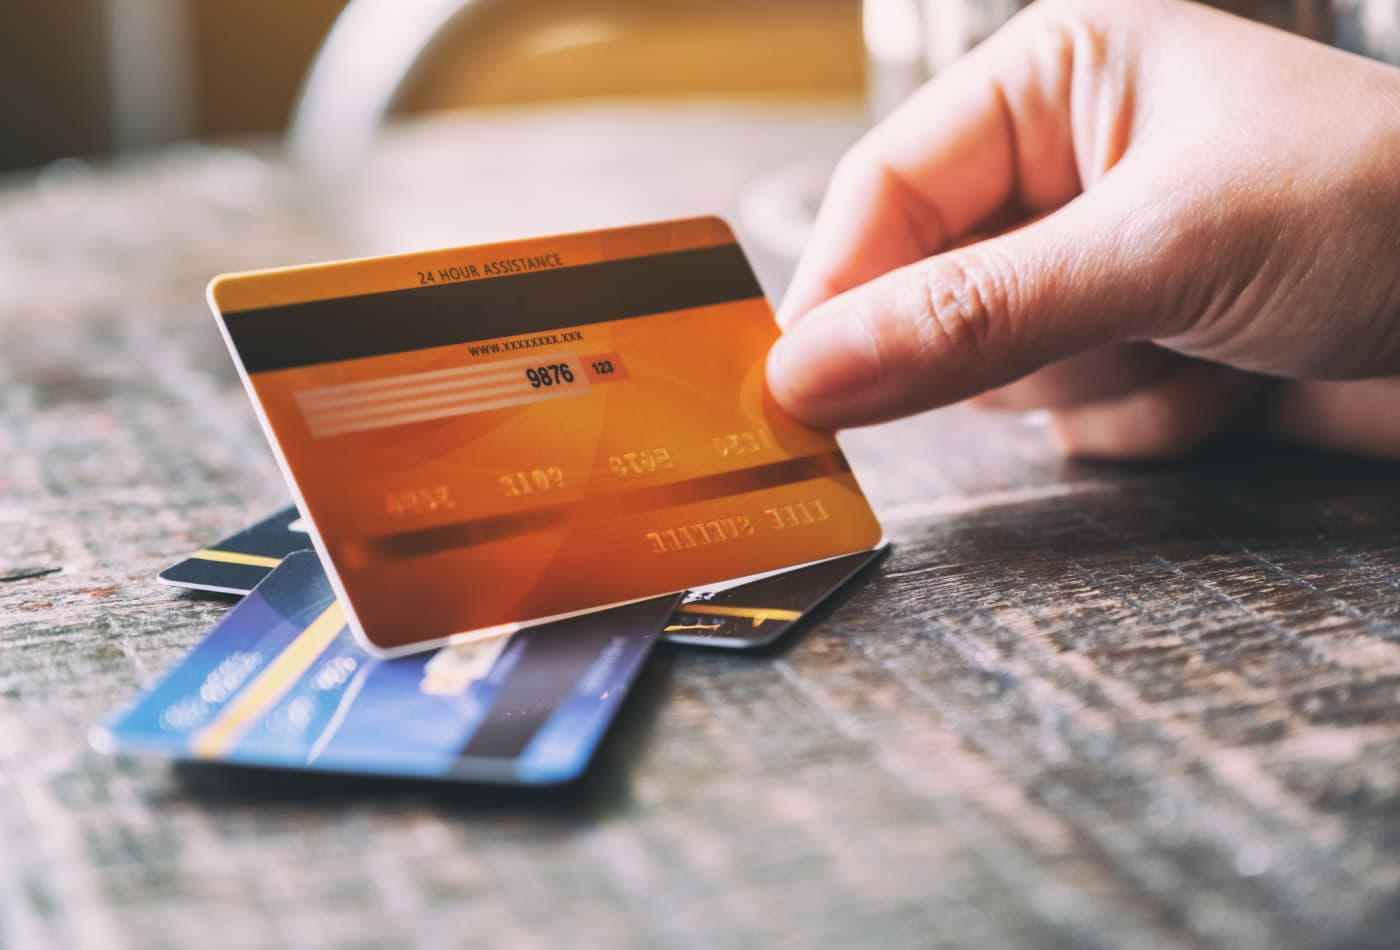 Here's how having multiple credit cards affects your credit score